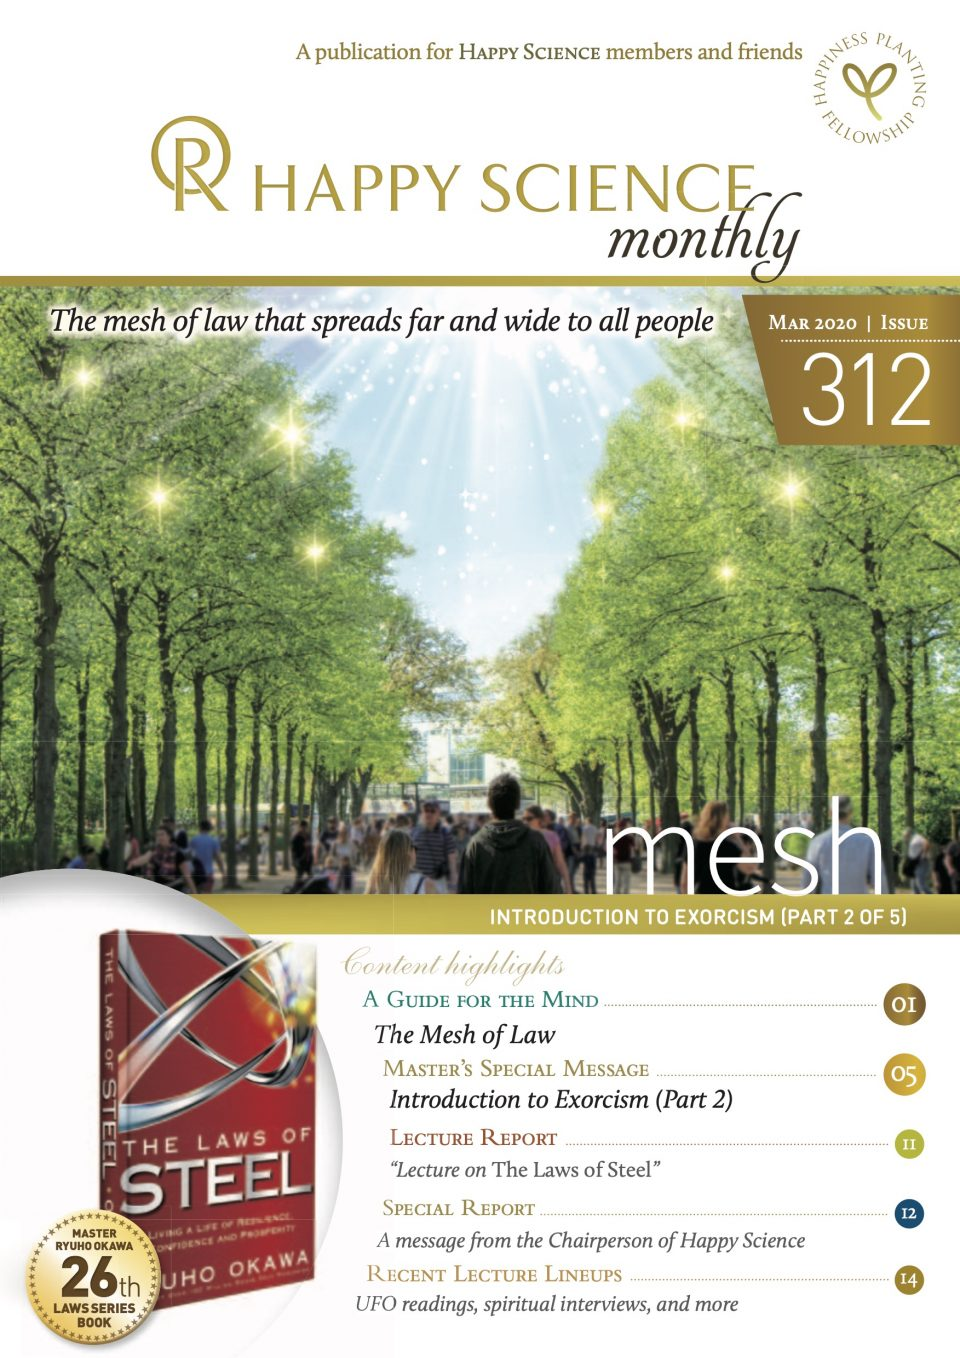 HAPPY SCIENCE Monthly 312 is released!